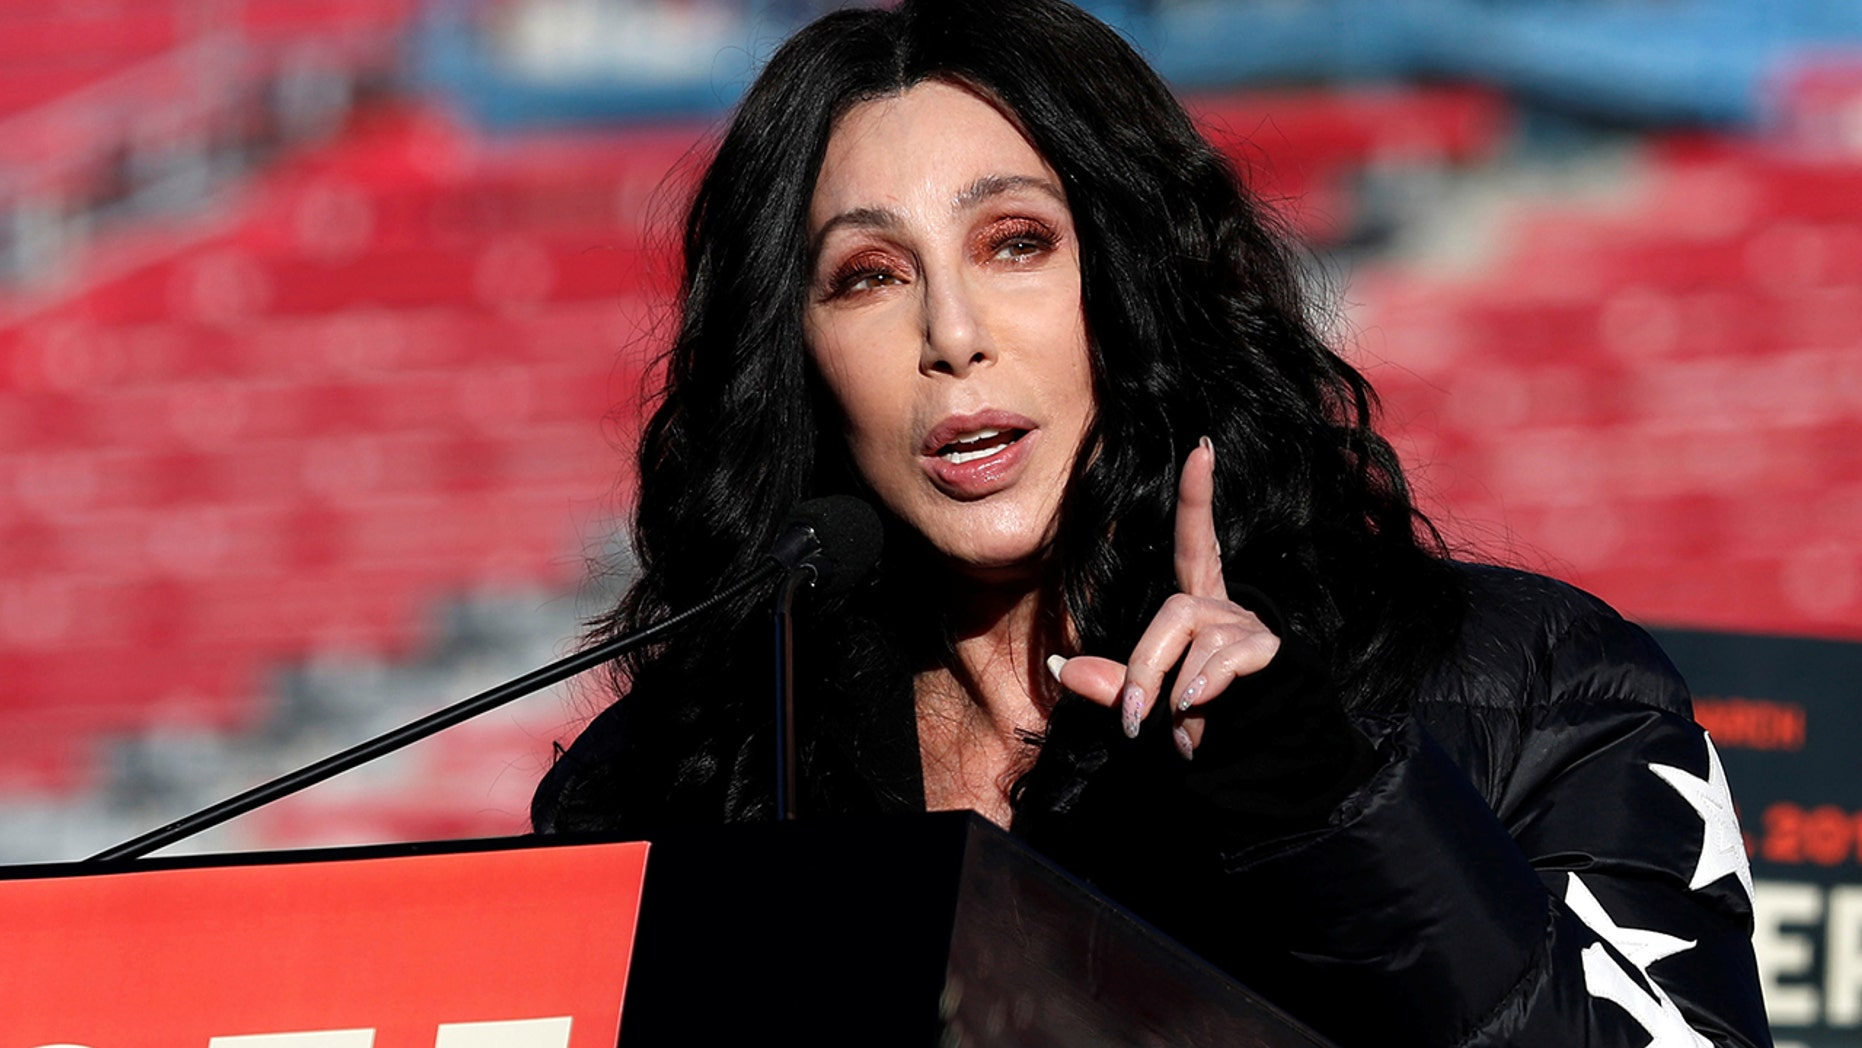 Pop icon, Cher called for EPA chief Scott Pruitt to be placed in prison after he proposed a rule that would roll back an Obama-era rule meant to reduce the risks of chemical disasters at more than 10,000 facilities across the nation.